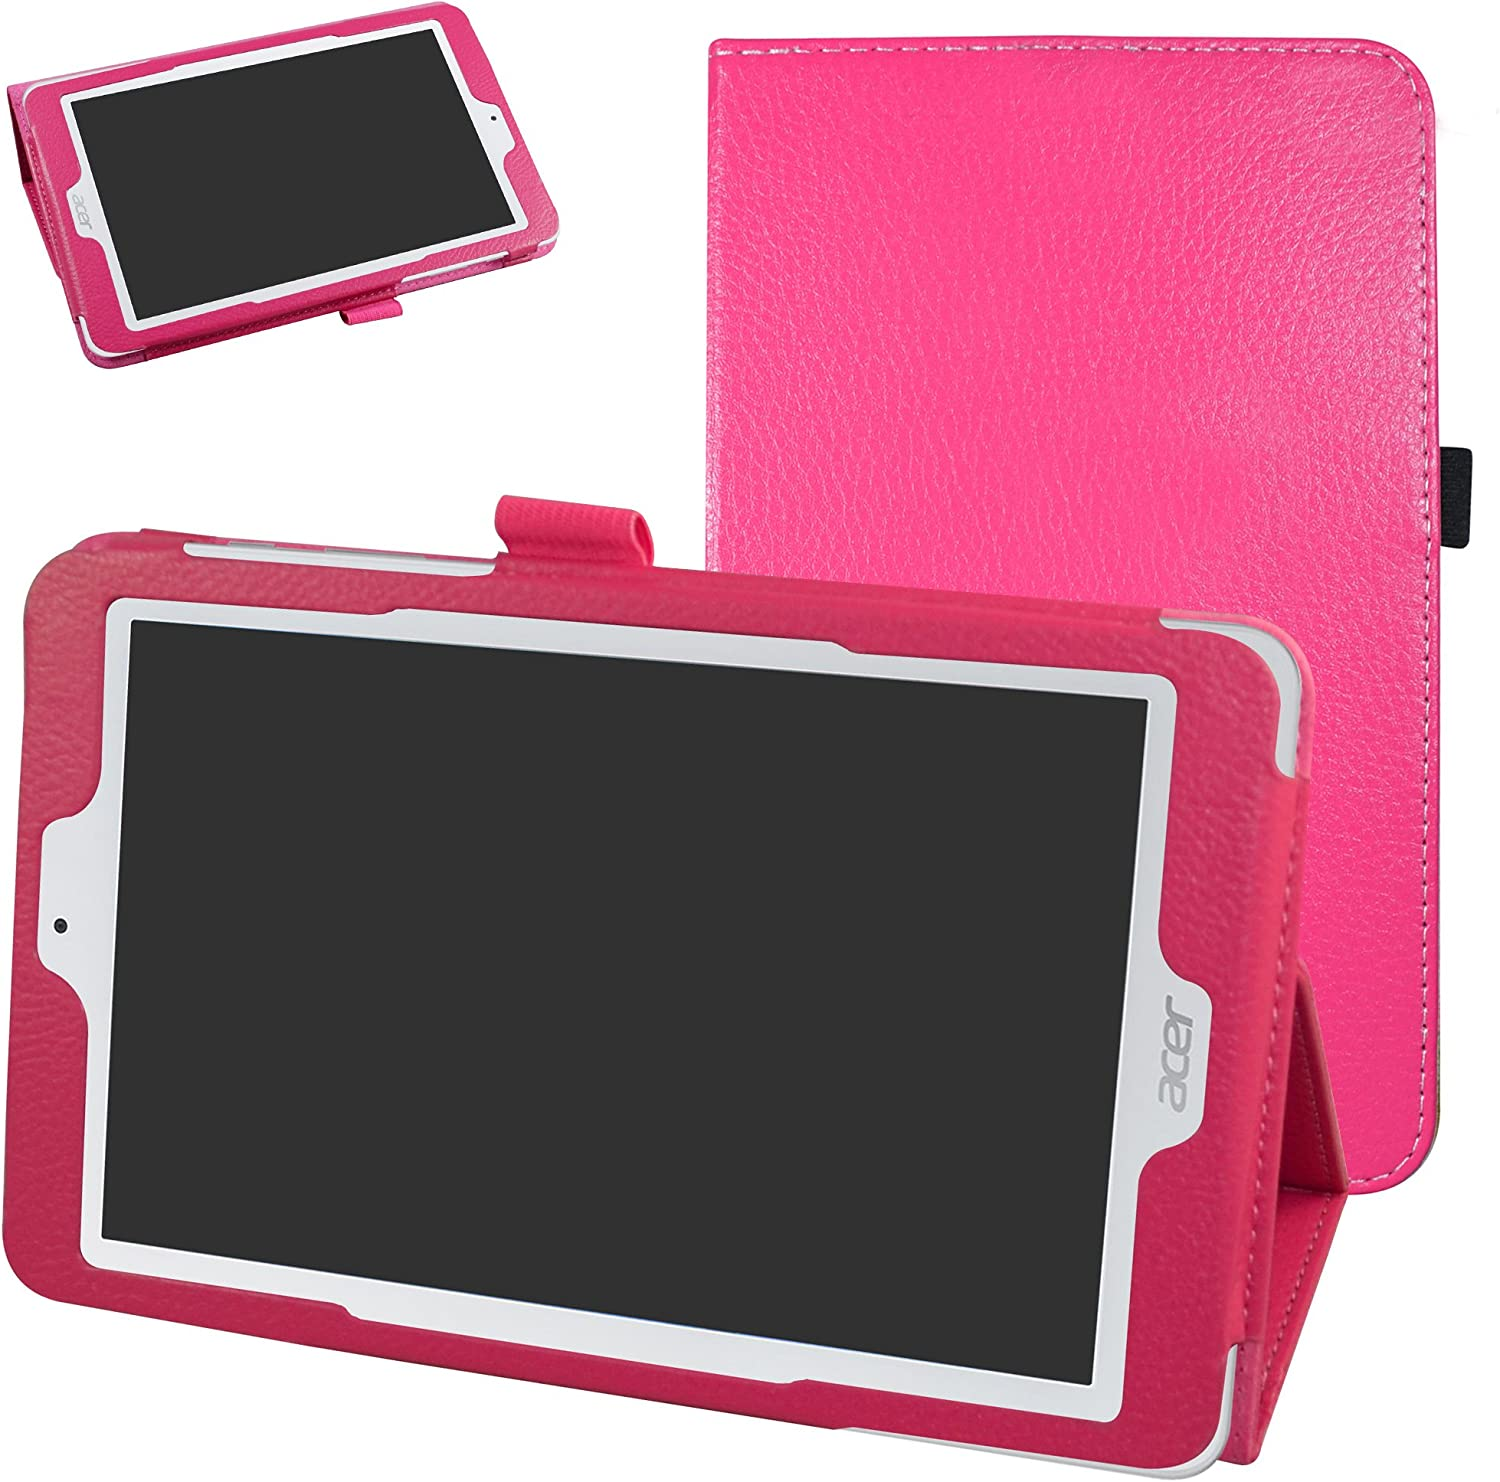 """Acer Iconia One 8 B1-850 Case,Mama Mouth PU Leather Folio 2-Folding Stand Cover with Stylus Holder for 8"""" Acer Iconia One 8 B1-850 Android Tablet,Rose Red"""